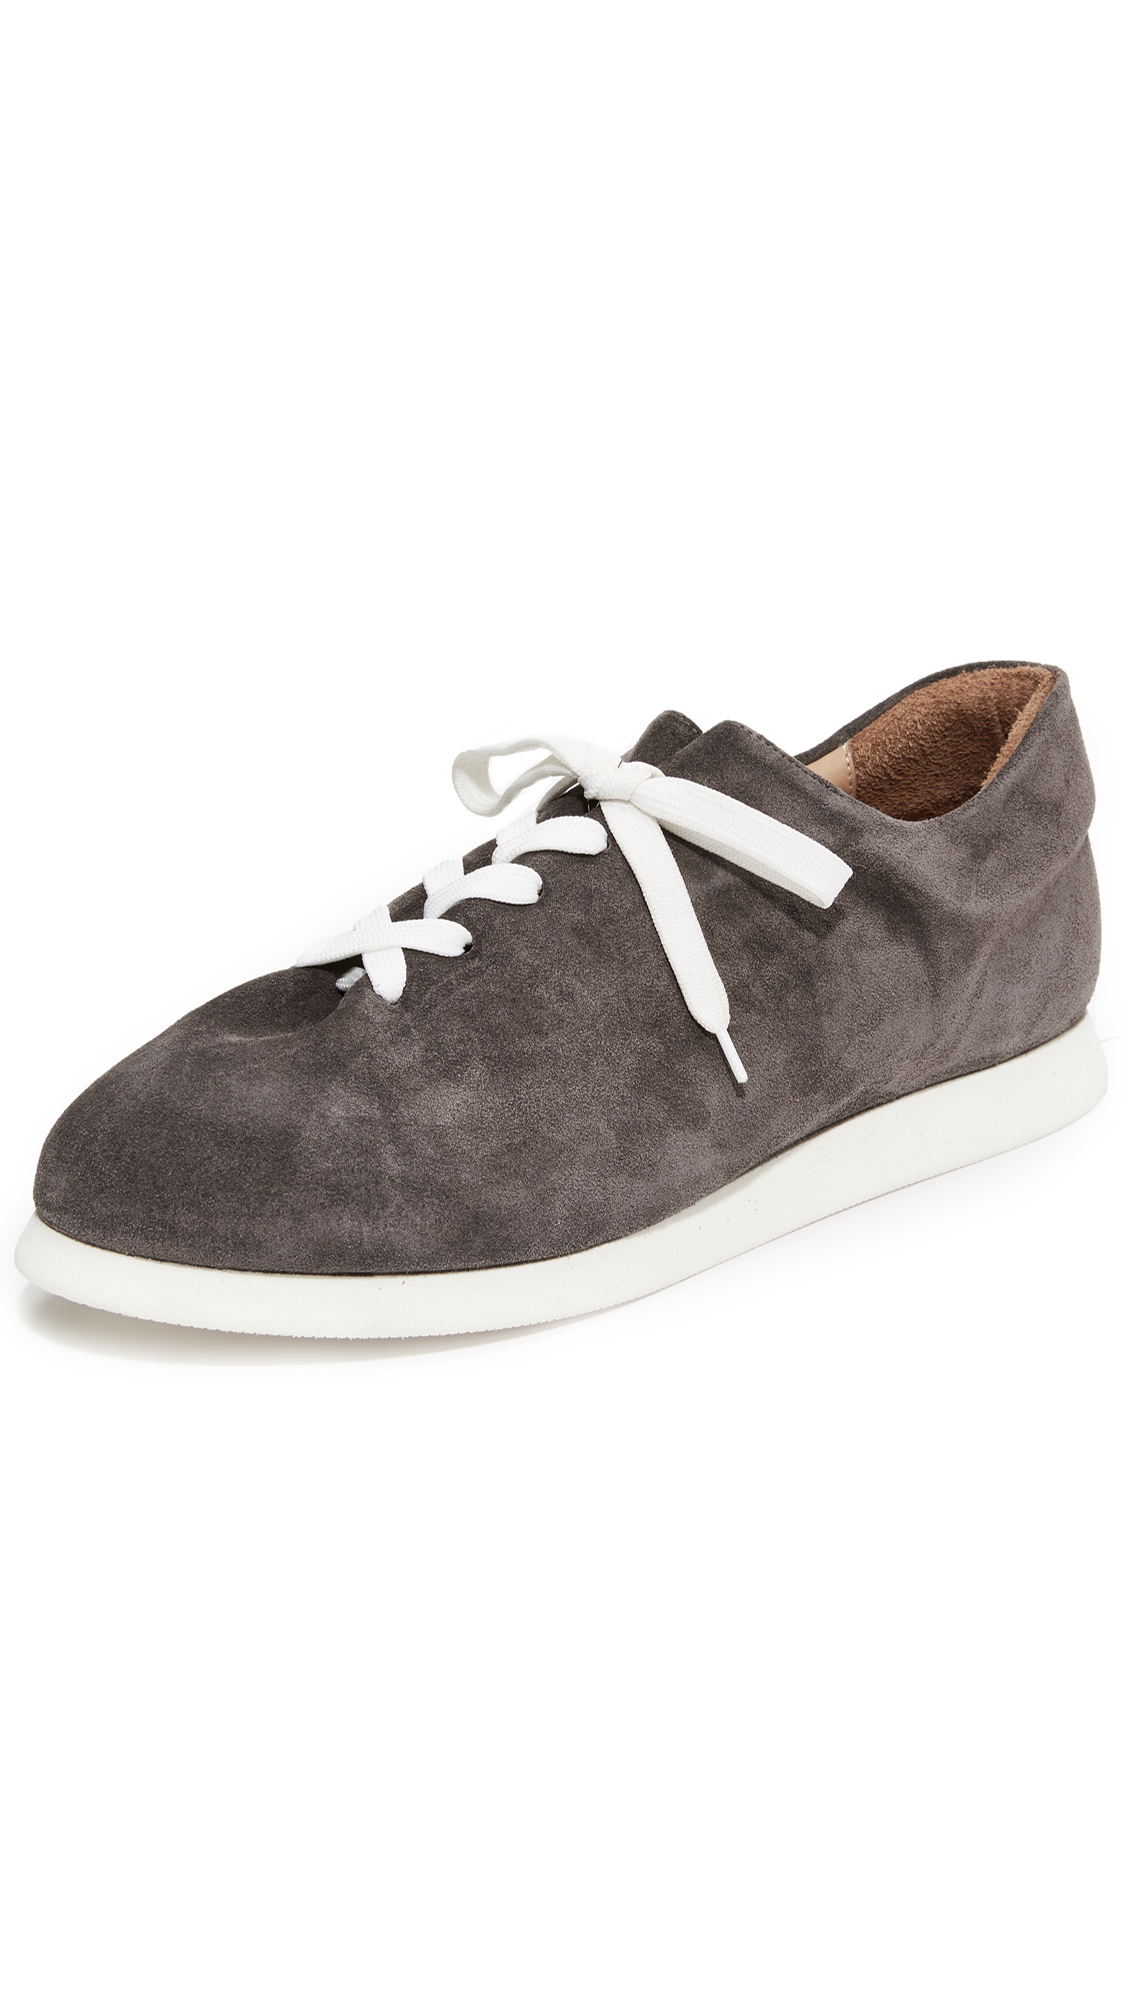 Soloviere Jacky Suede Runners